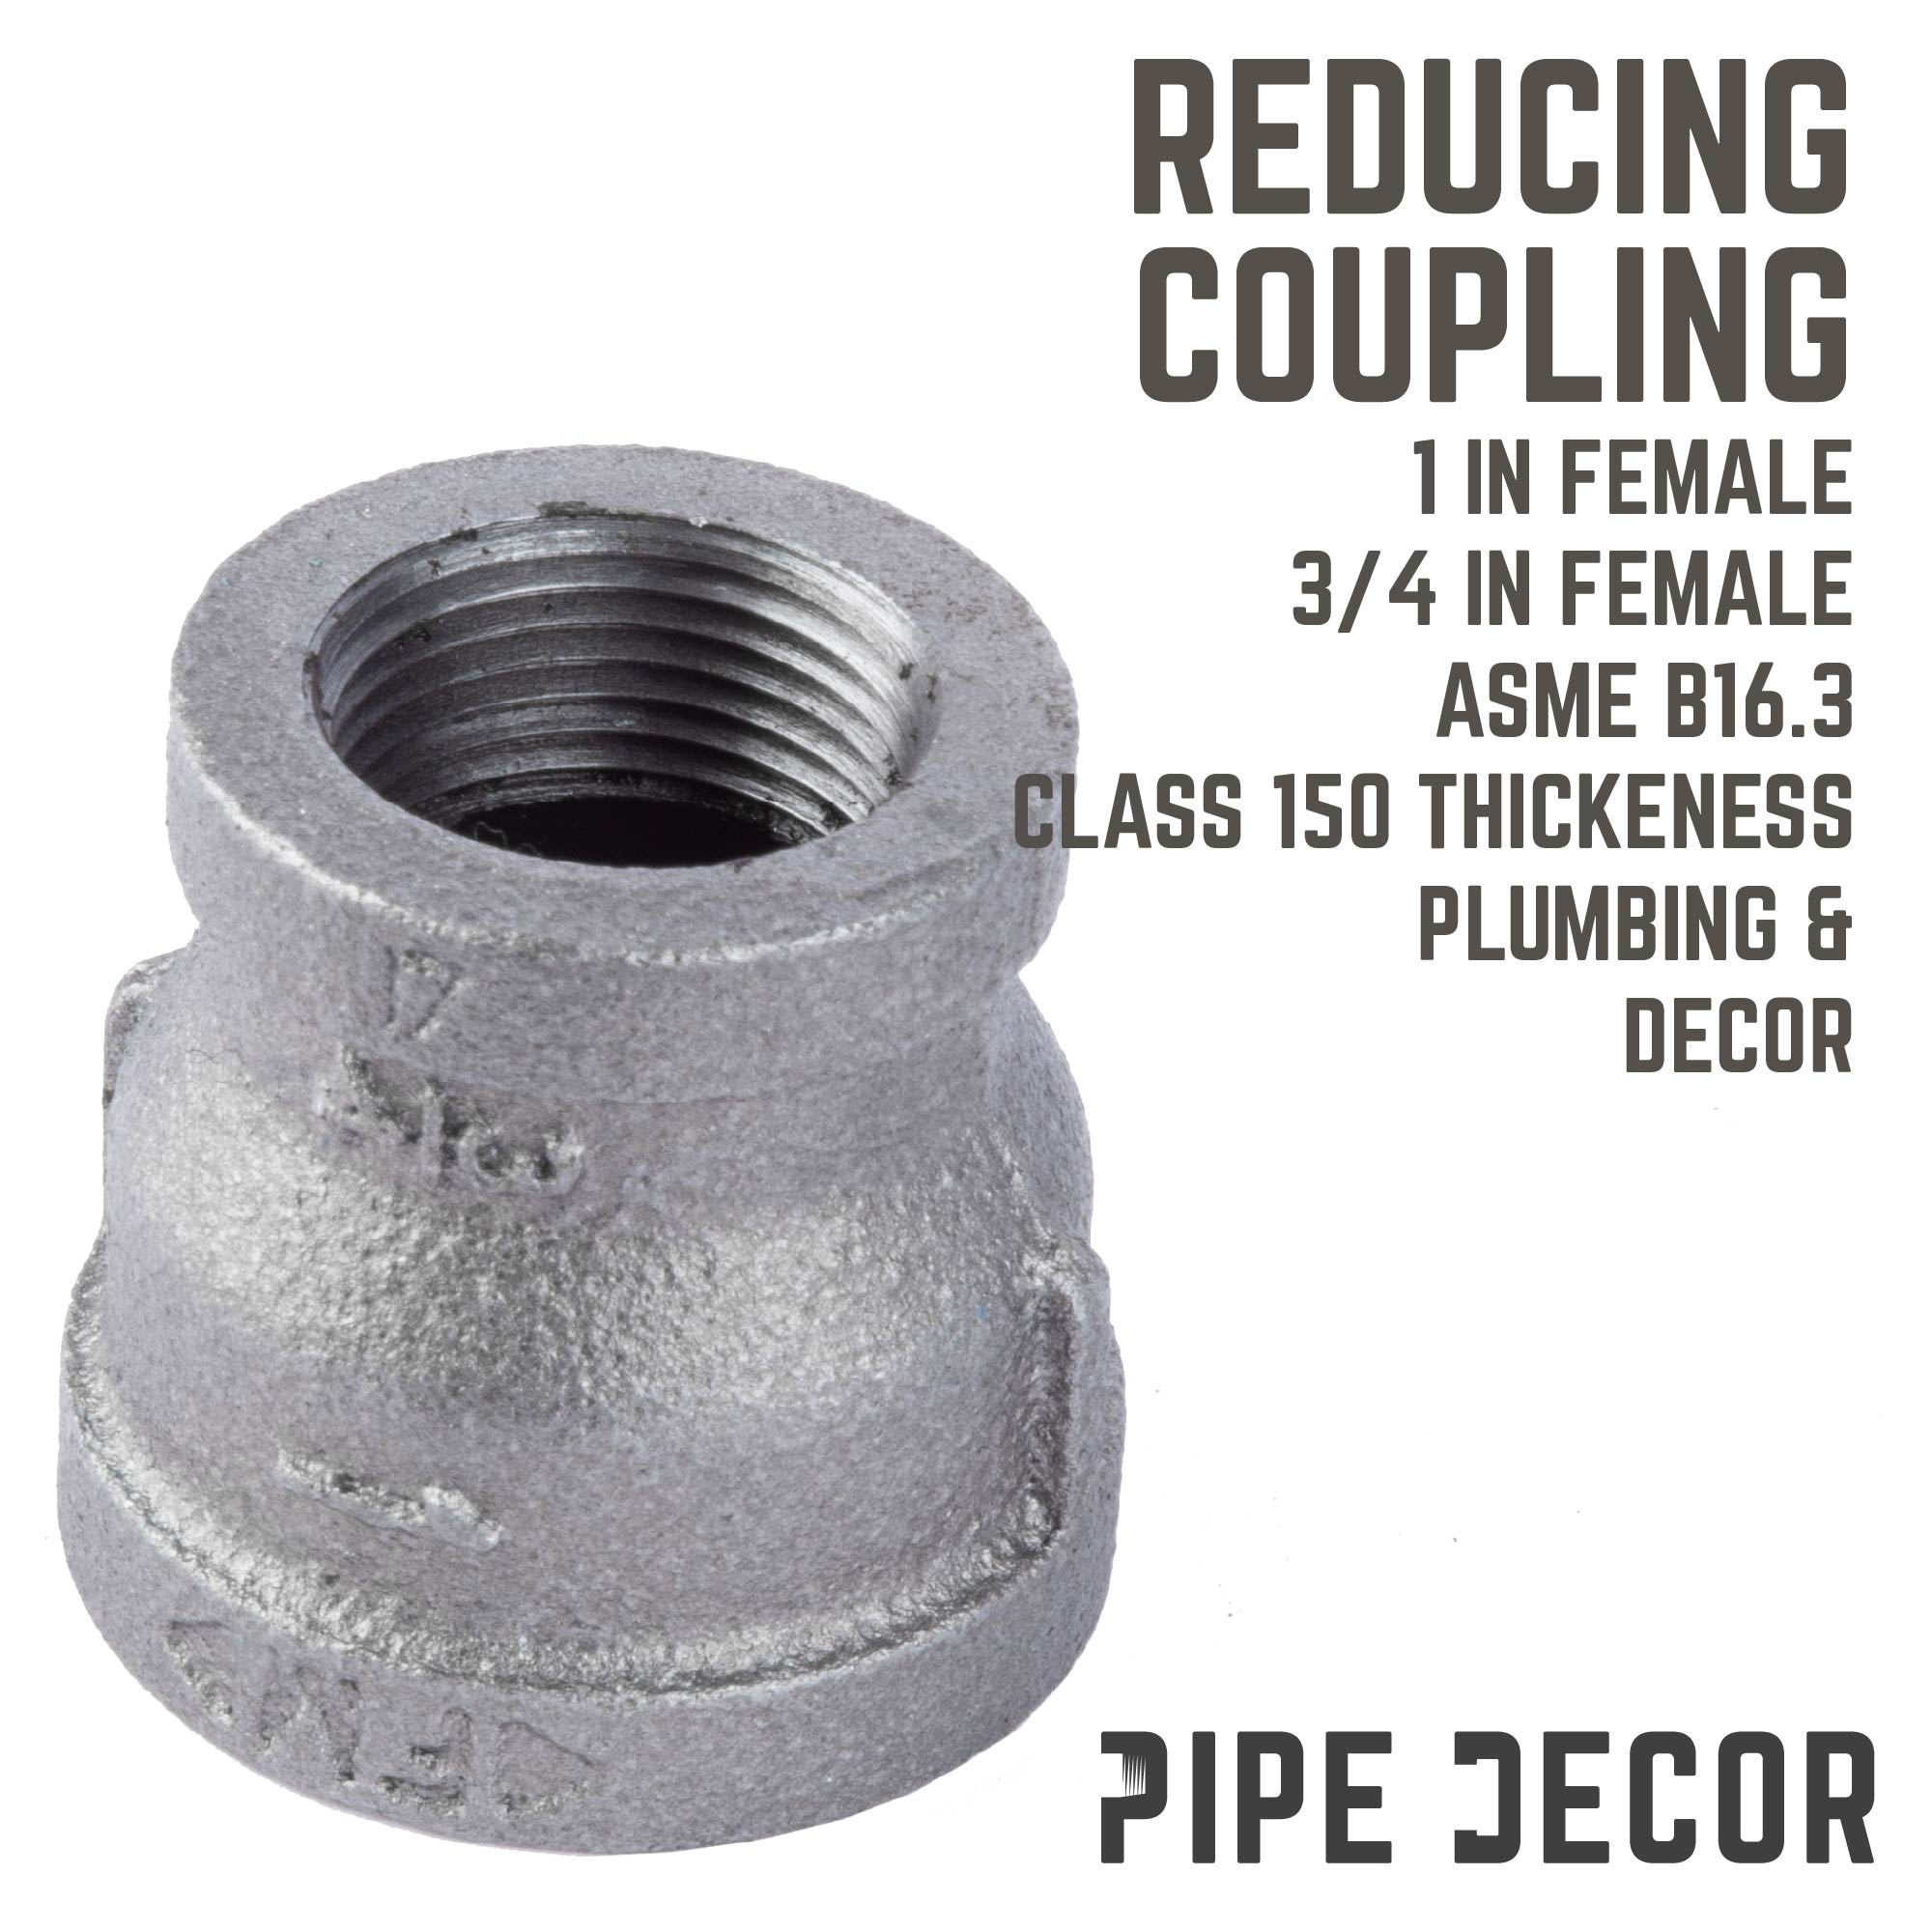 1 IN X 3/4 IN REDUCING COUPLING